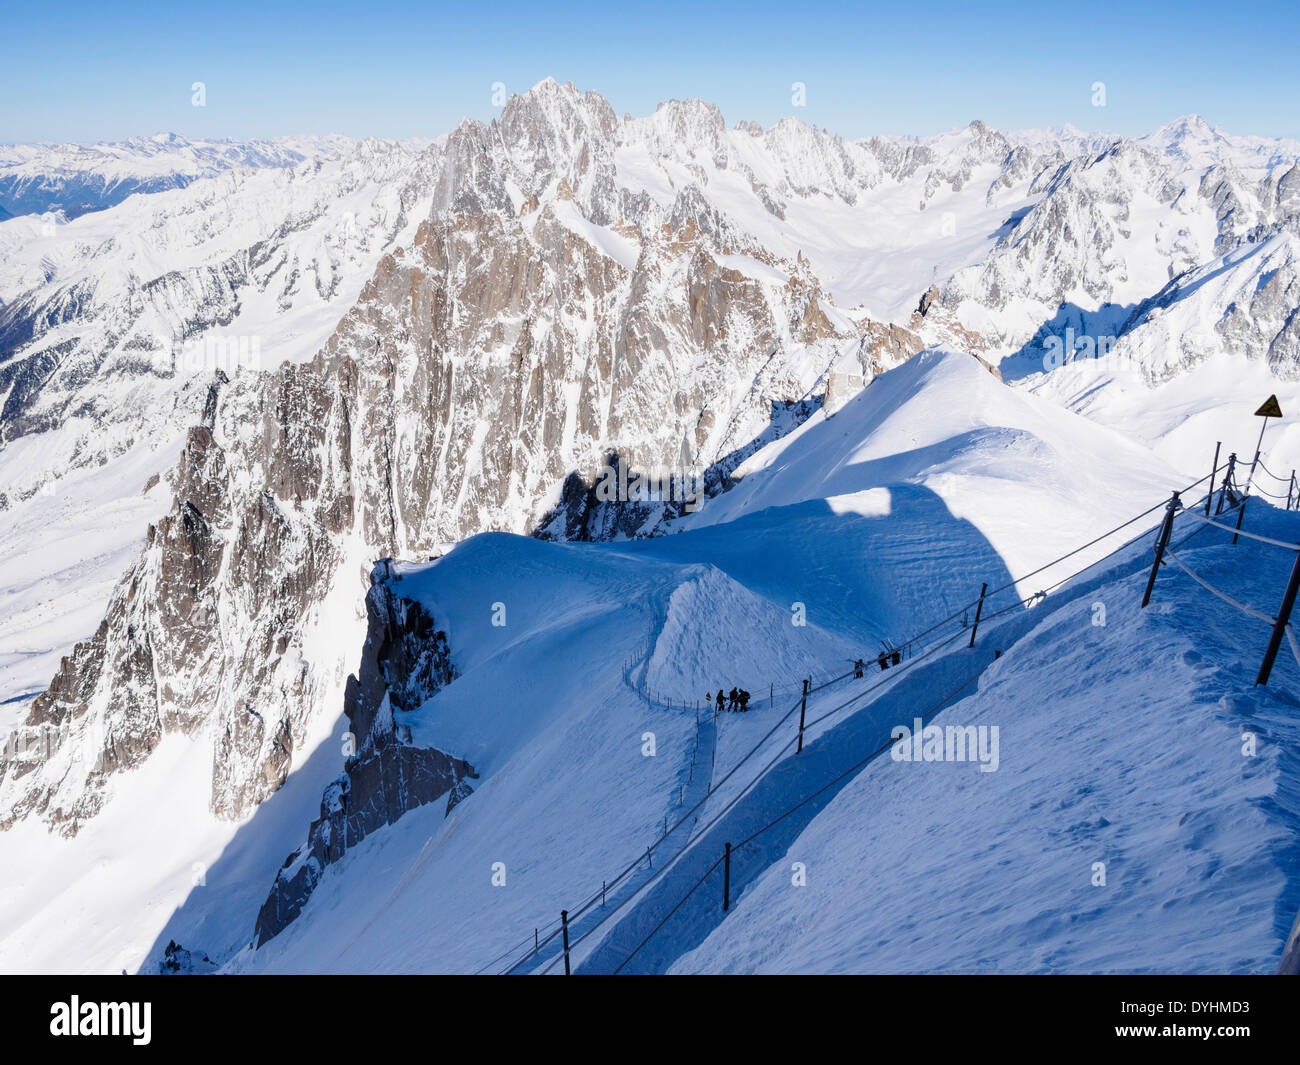 Roped path route to Vallee Blanche with skiers descending on Aiguille du Midi. Chamonix-Mont-Blanc Rhone-Alpes France - Stock Image